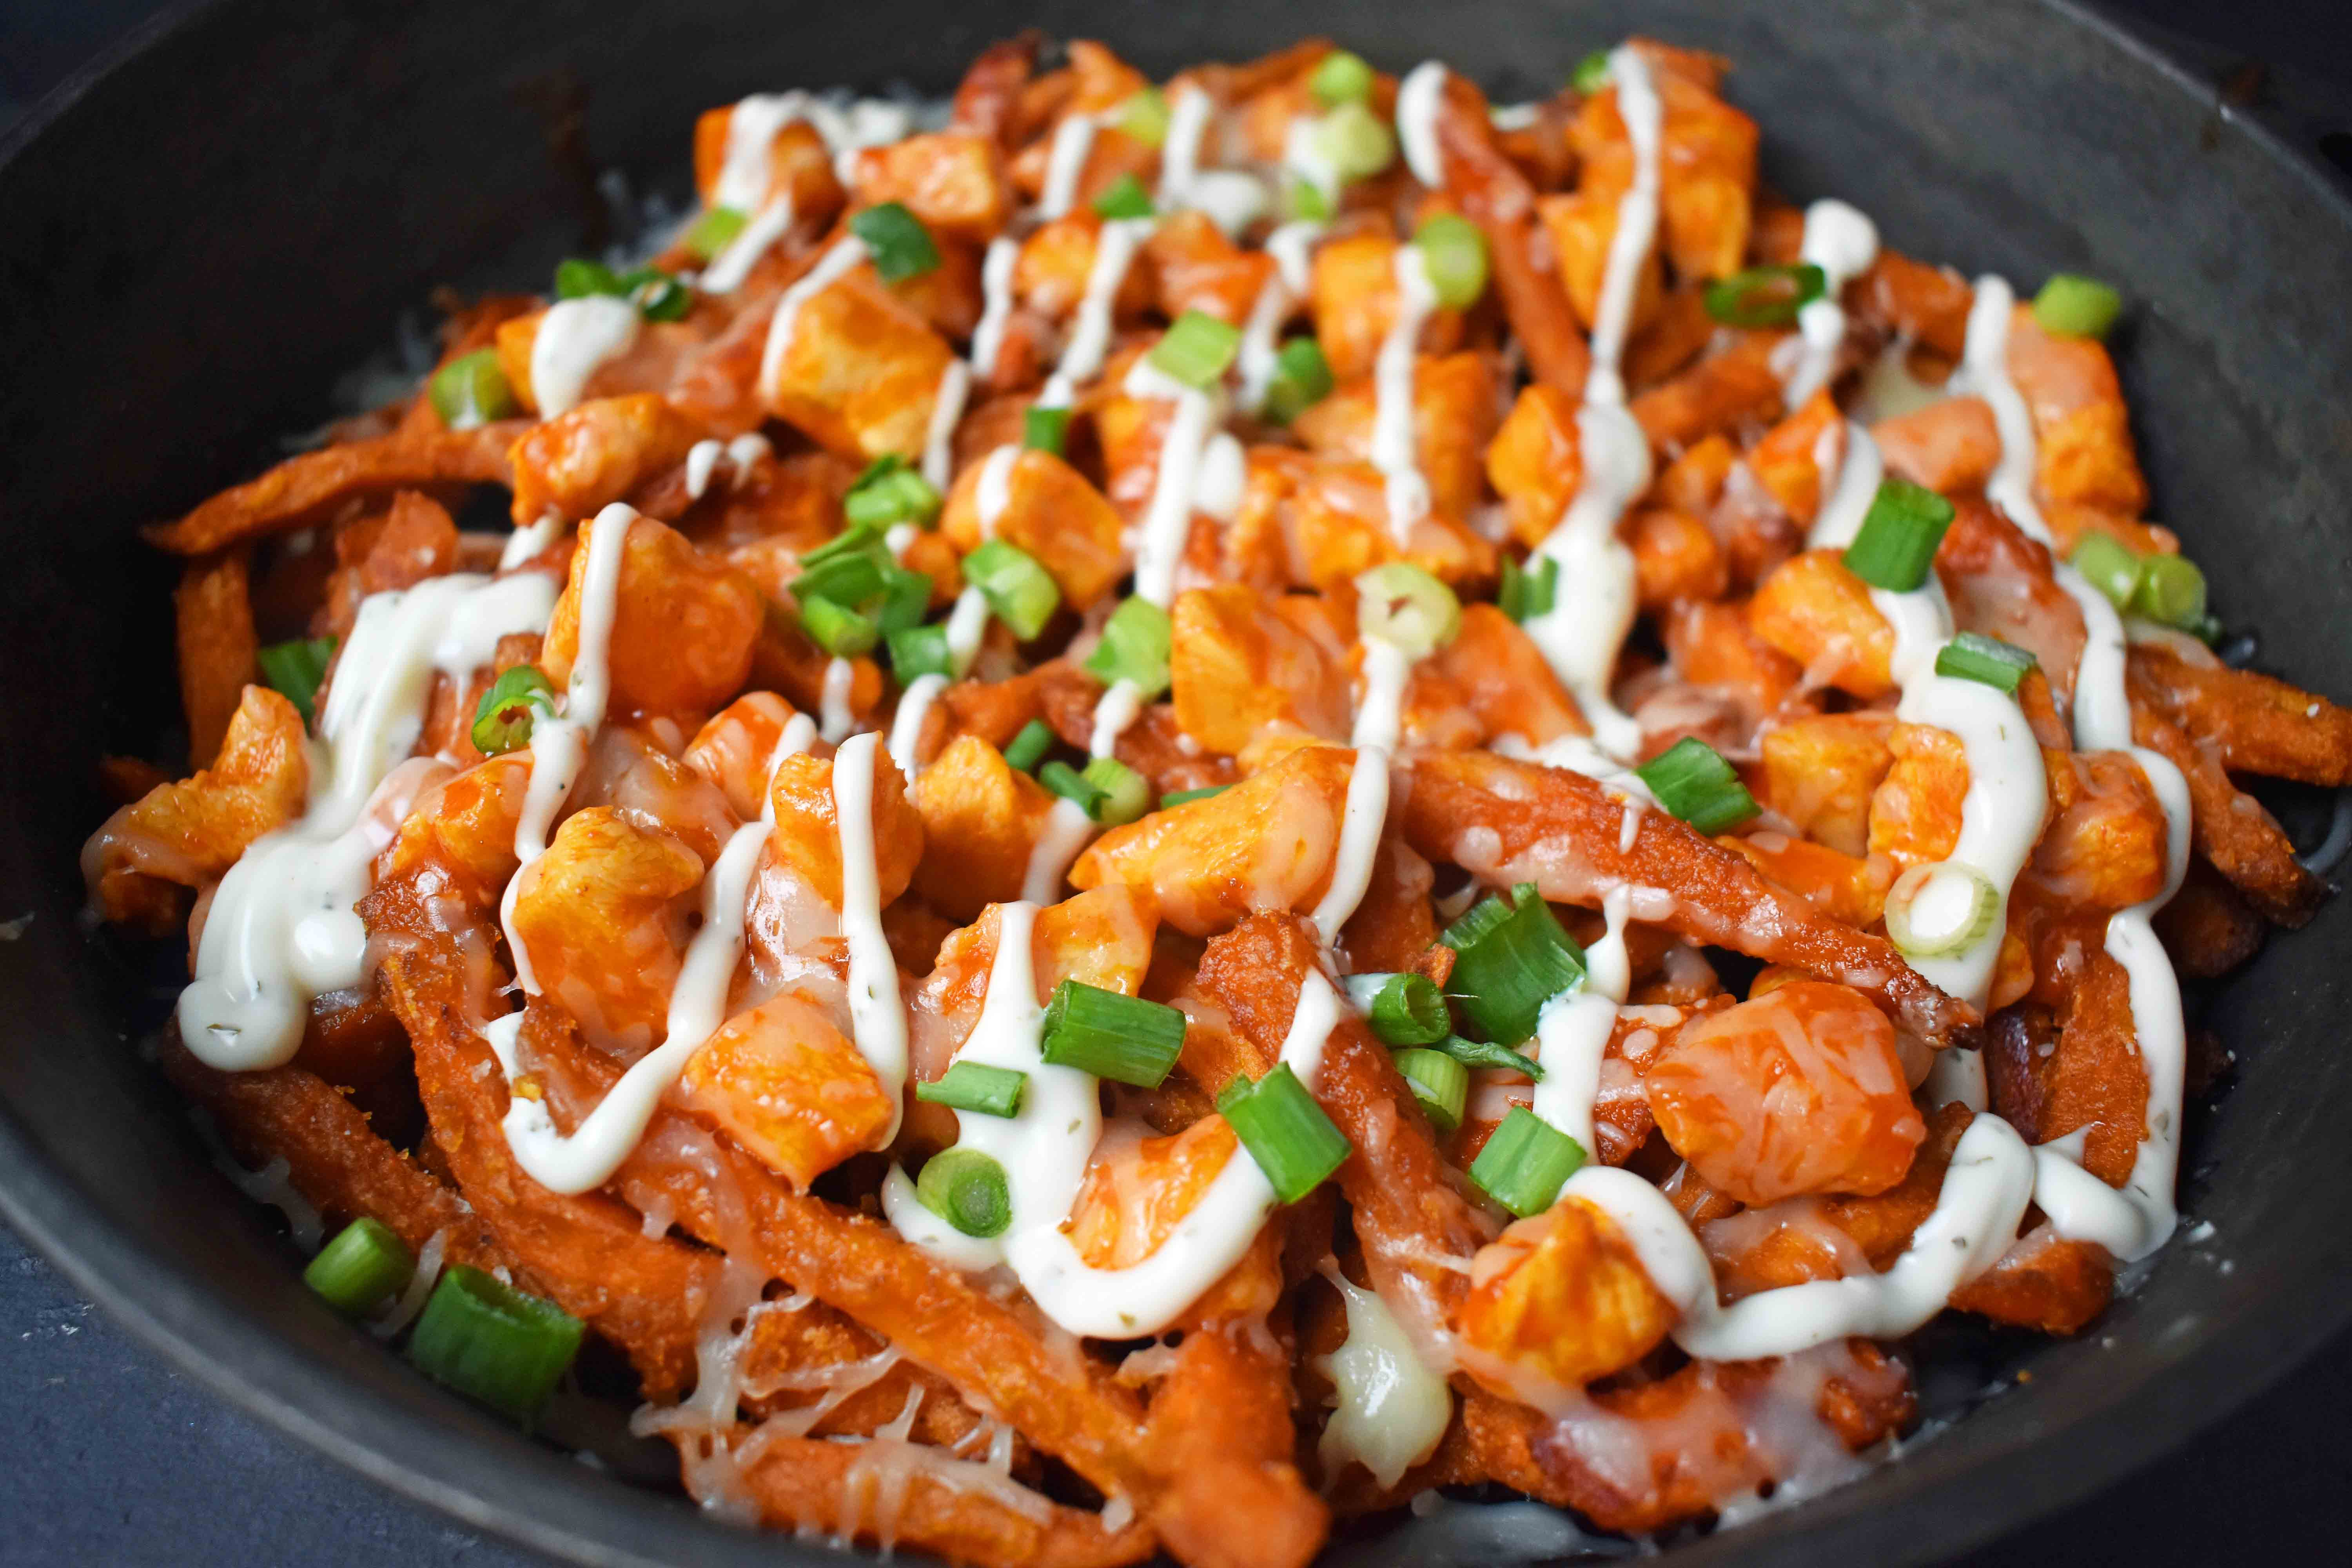 Buffalo Chicken Sweet Potato Fries by Modern Honey. Crisp Sweet Potato Fries topped with Buffalo Wing Chicken, Cheese, Green Onions, and Ranch Dressing.